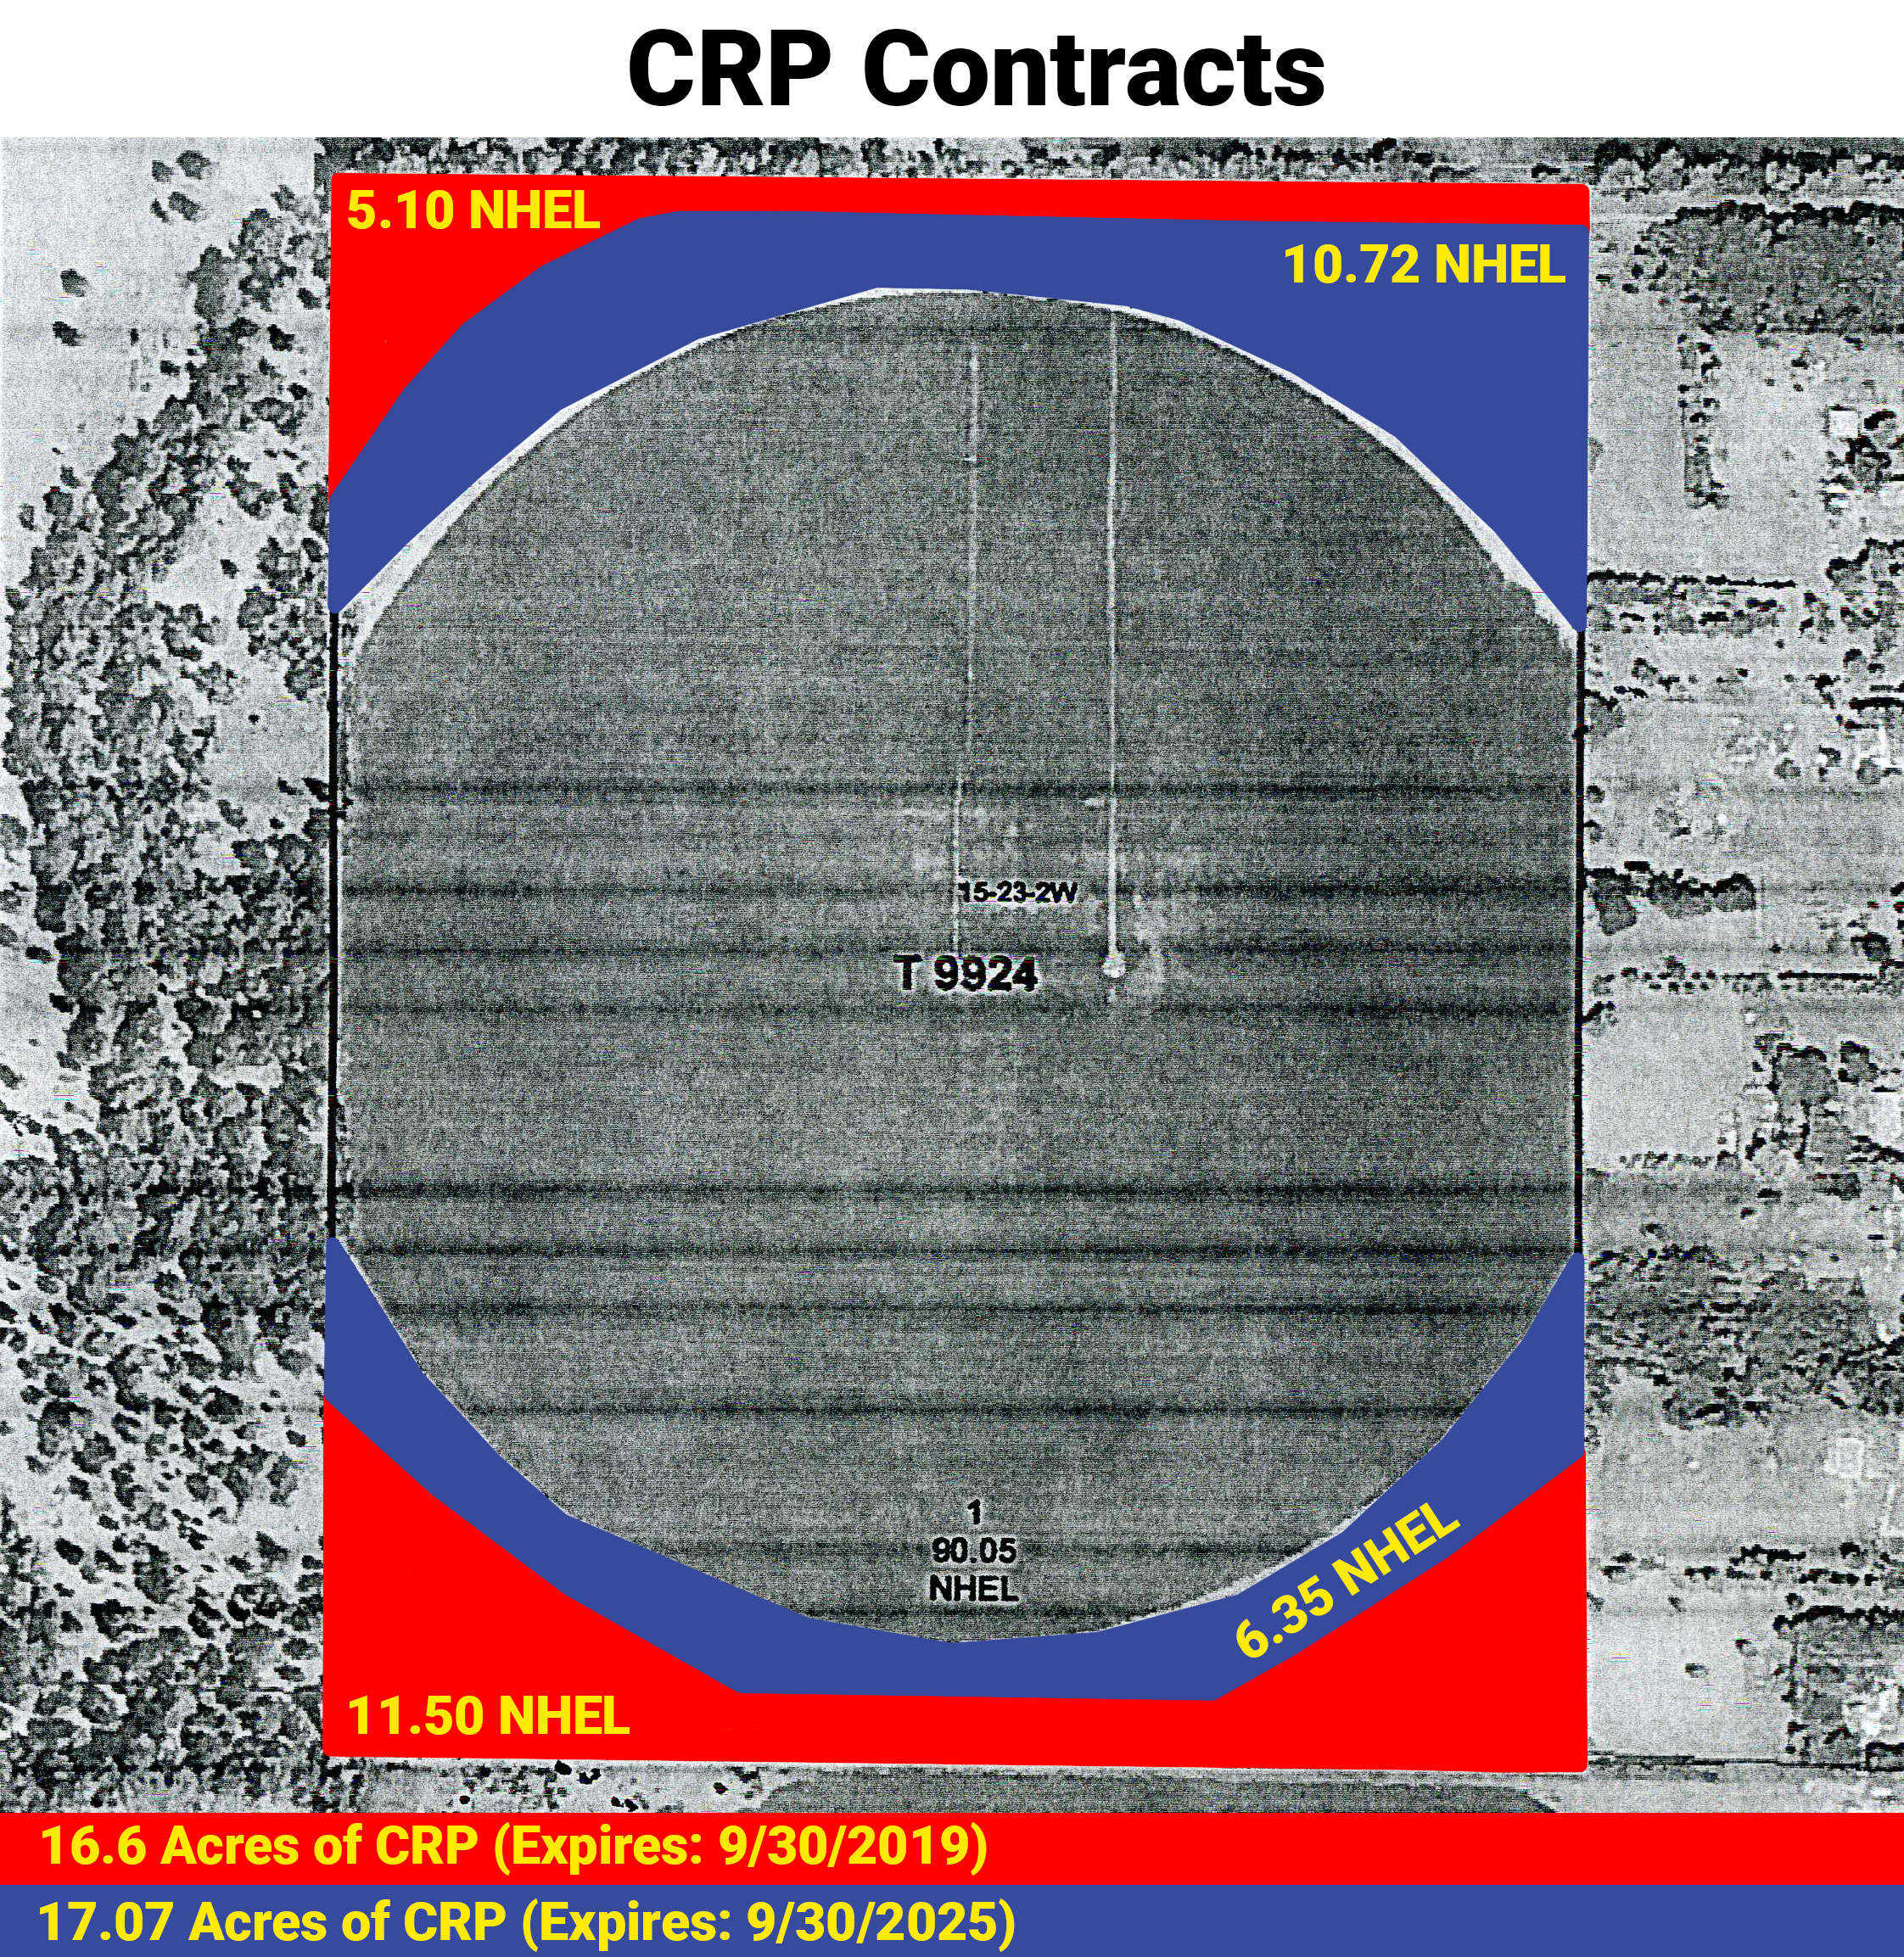 CRP Contracts_Zach